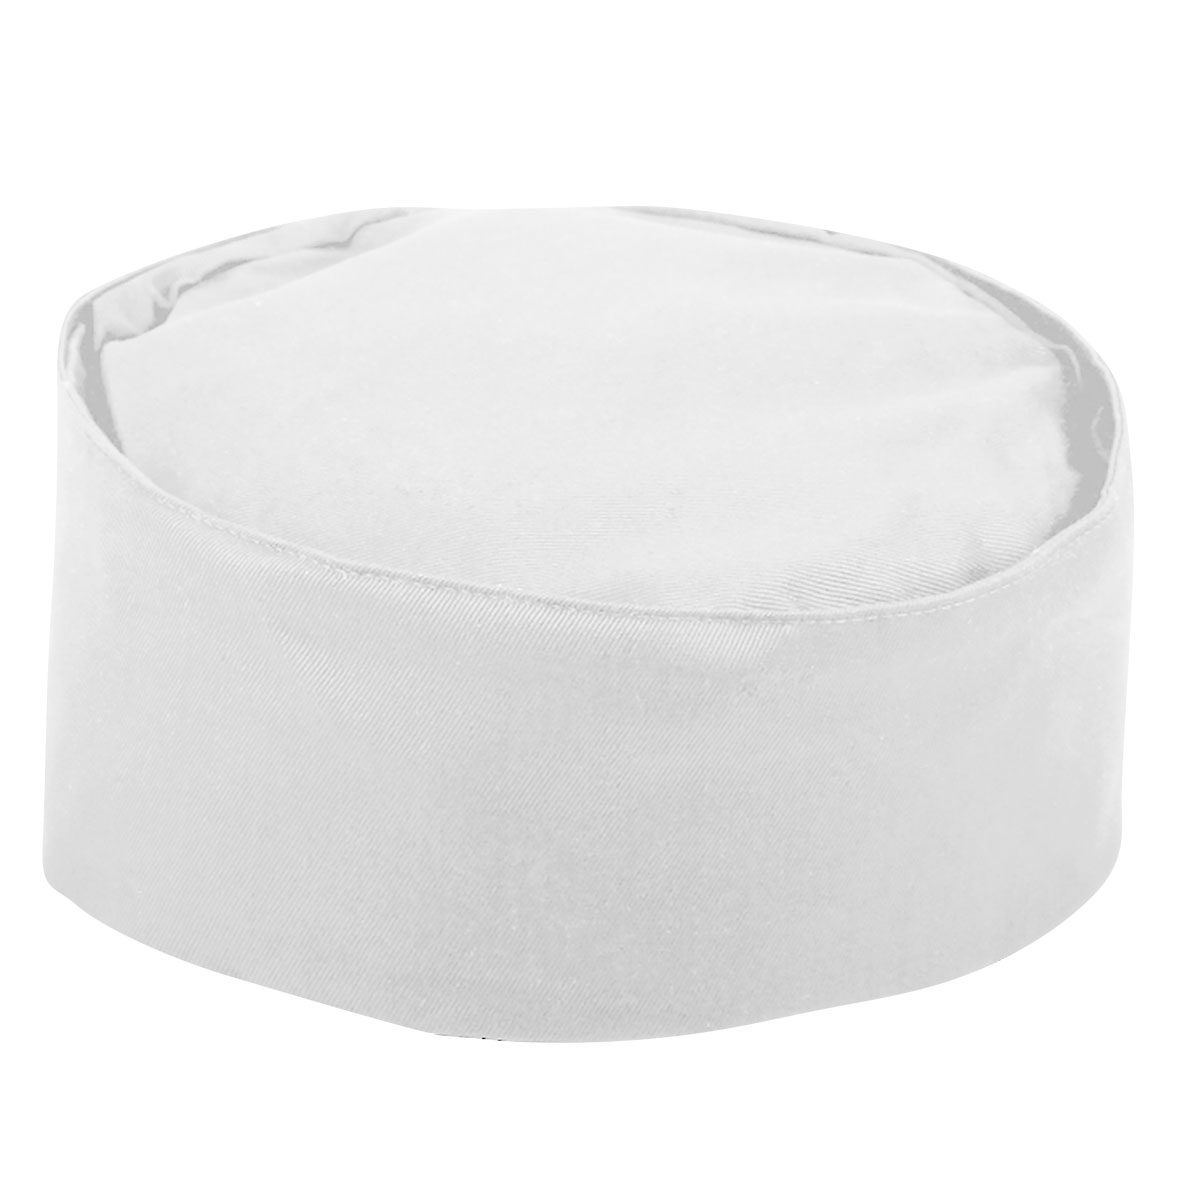 Unisex Chefs Hat - CHAT1_WHITE